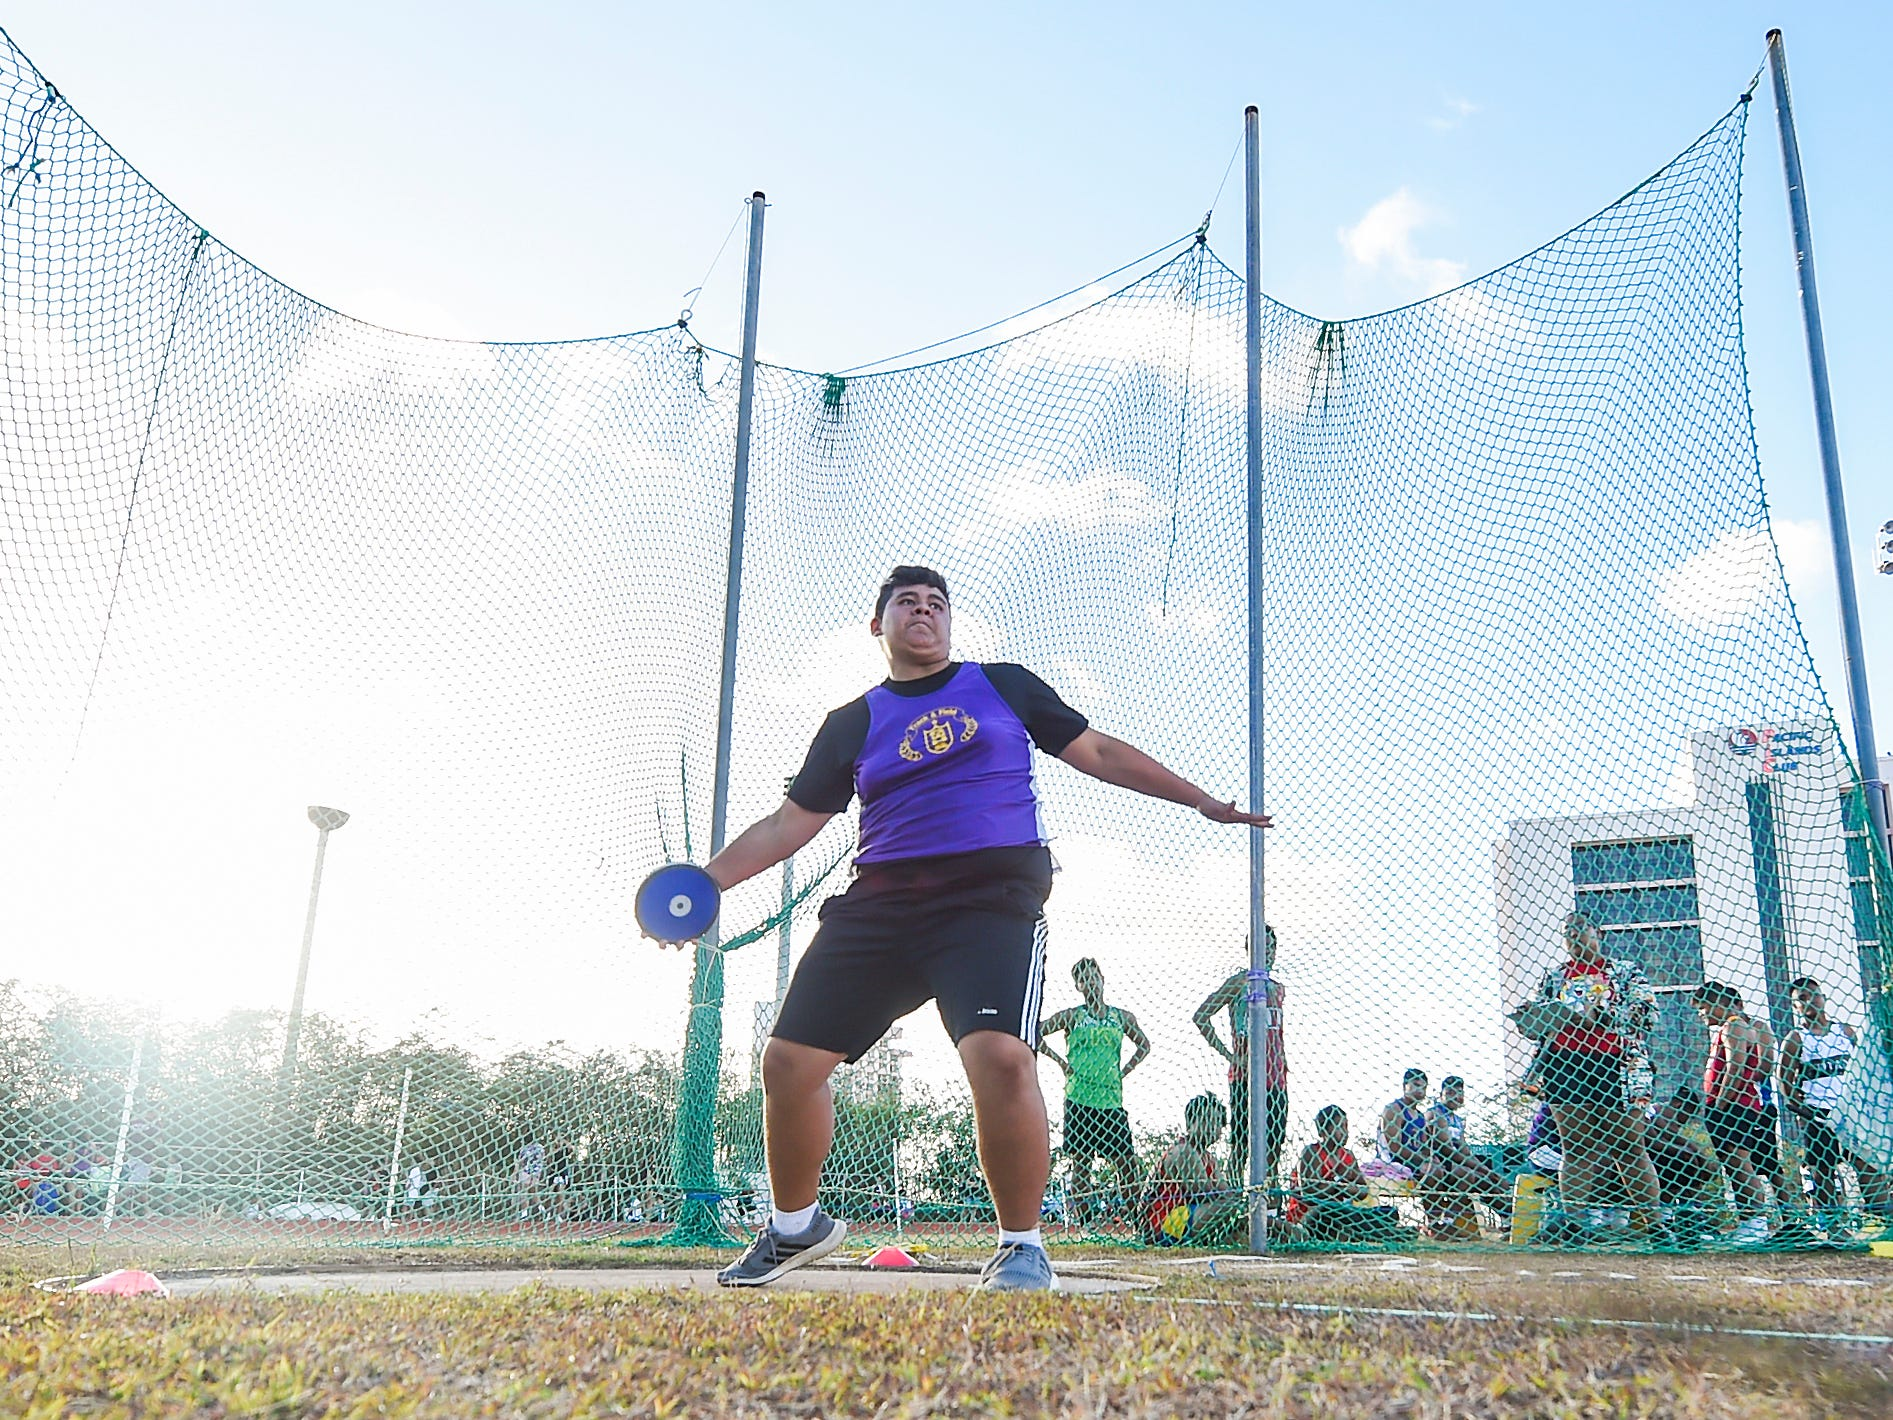 George Washington's Jeremiah Mafnas, 16, competes in the Discus 1.6kg Varsity during a IIAAG Track and Field meet at John F. Kennedy Ramsey Field in Tamuning on May 10, 2019.